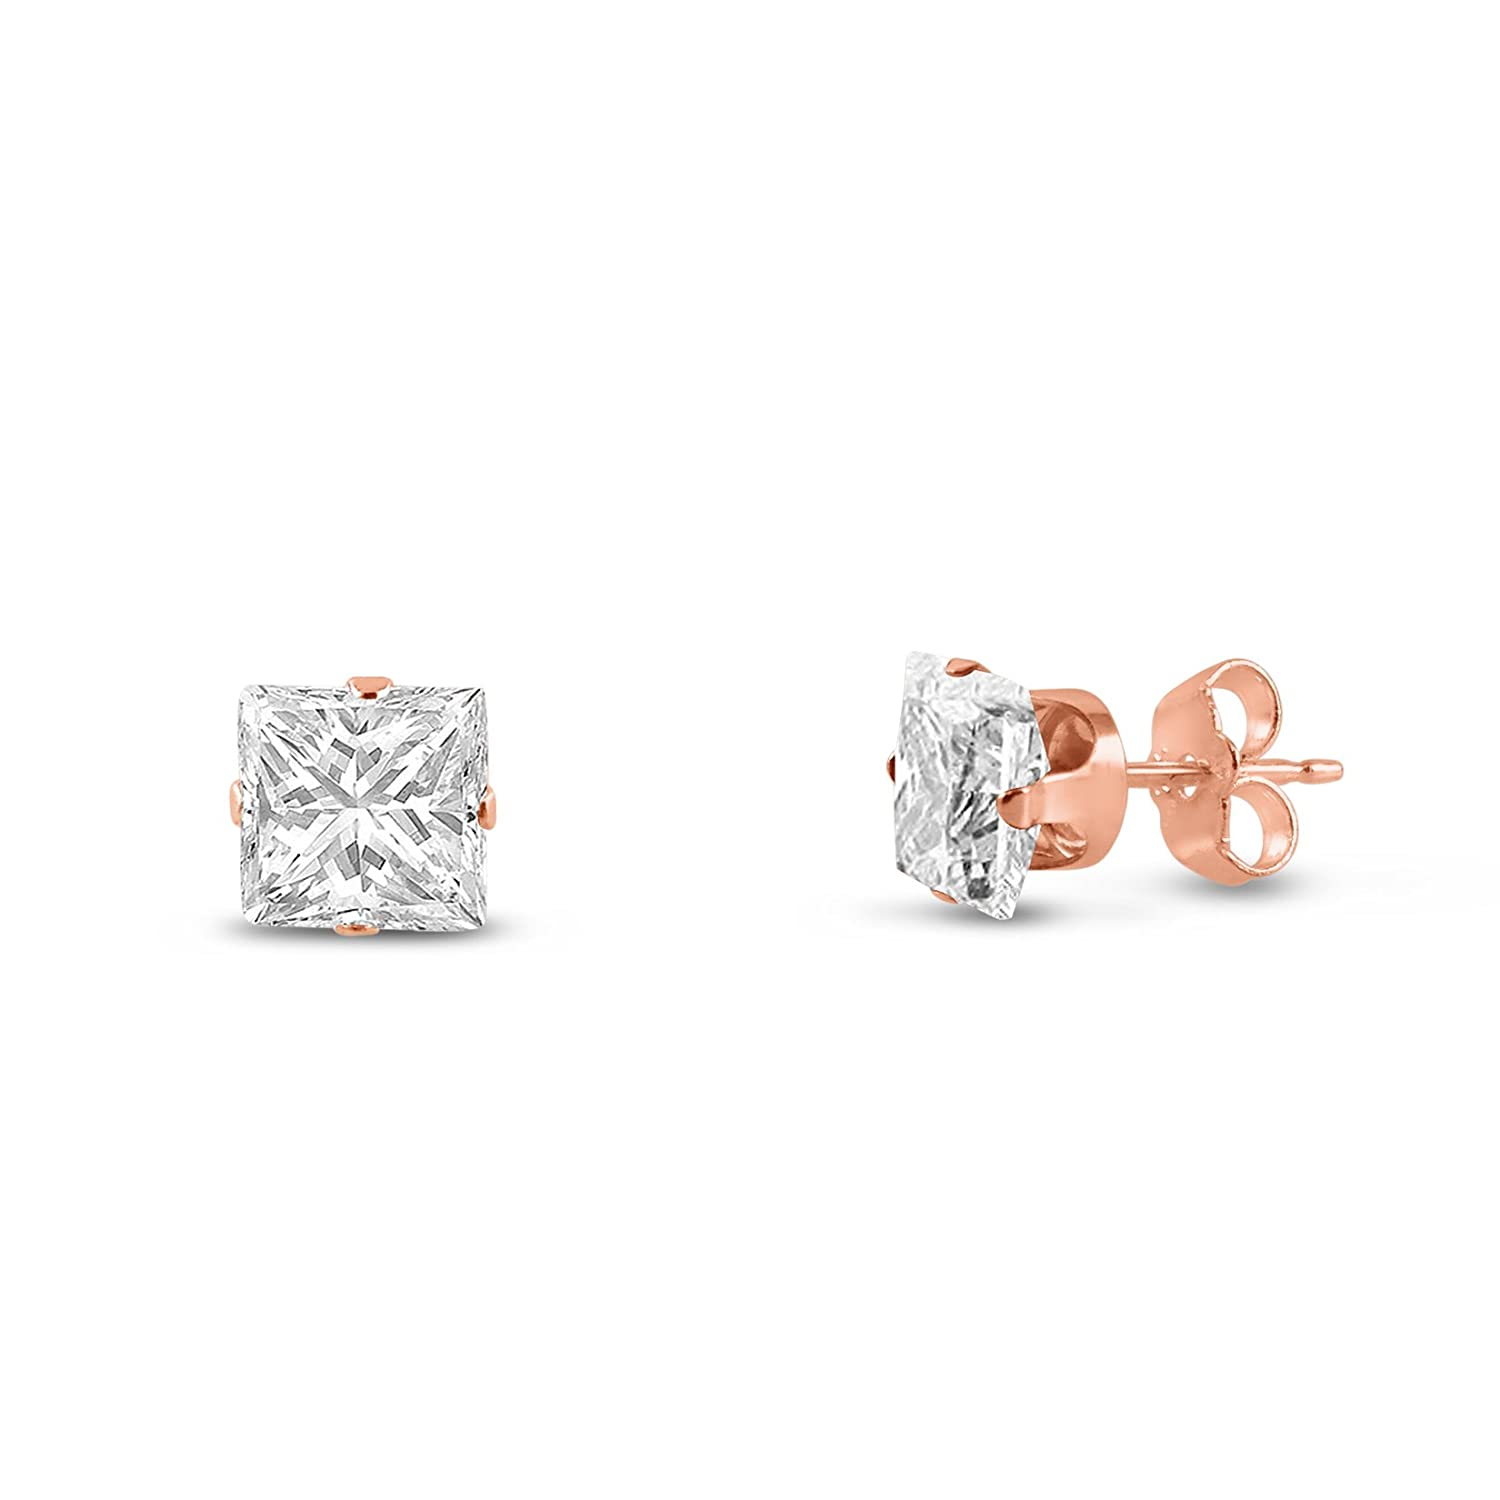 3-7mm Rose Gold Plated Silver Square Cut Clear CZ Stud Earring Set 5 Pairs